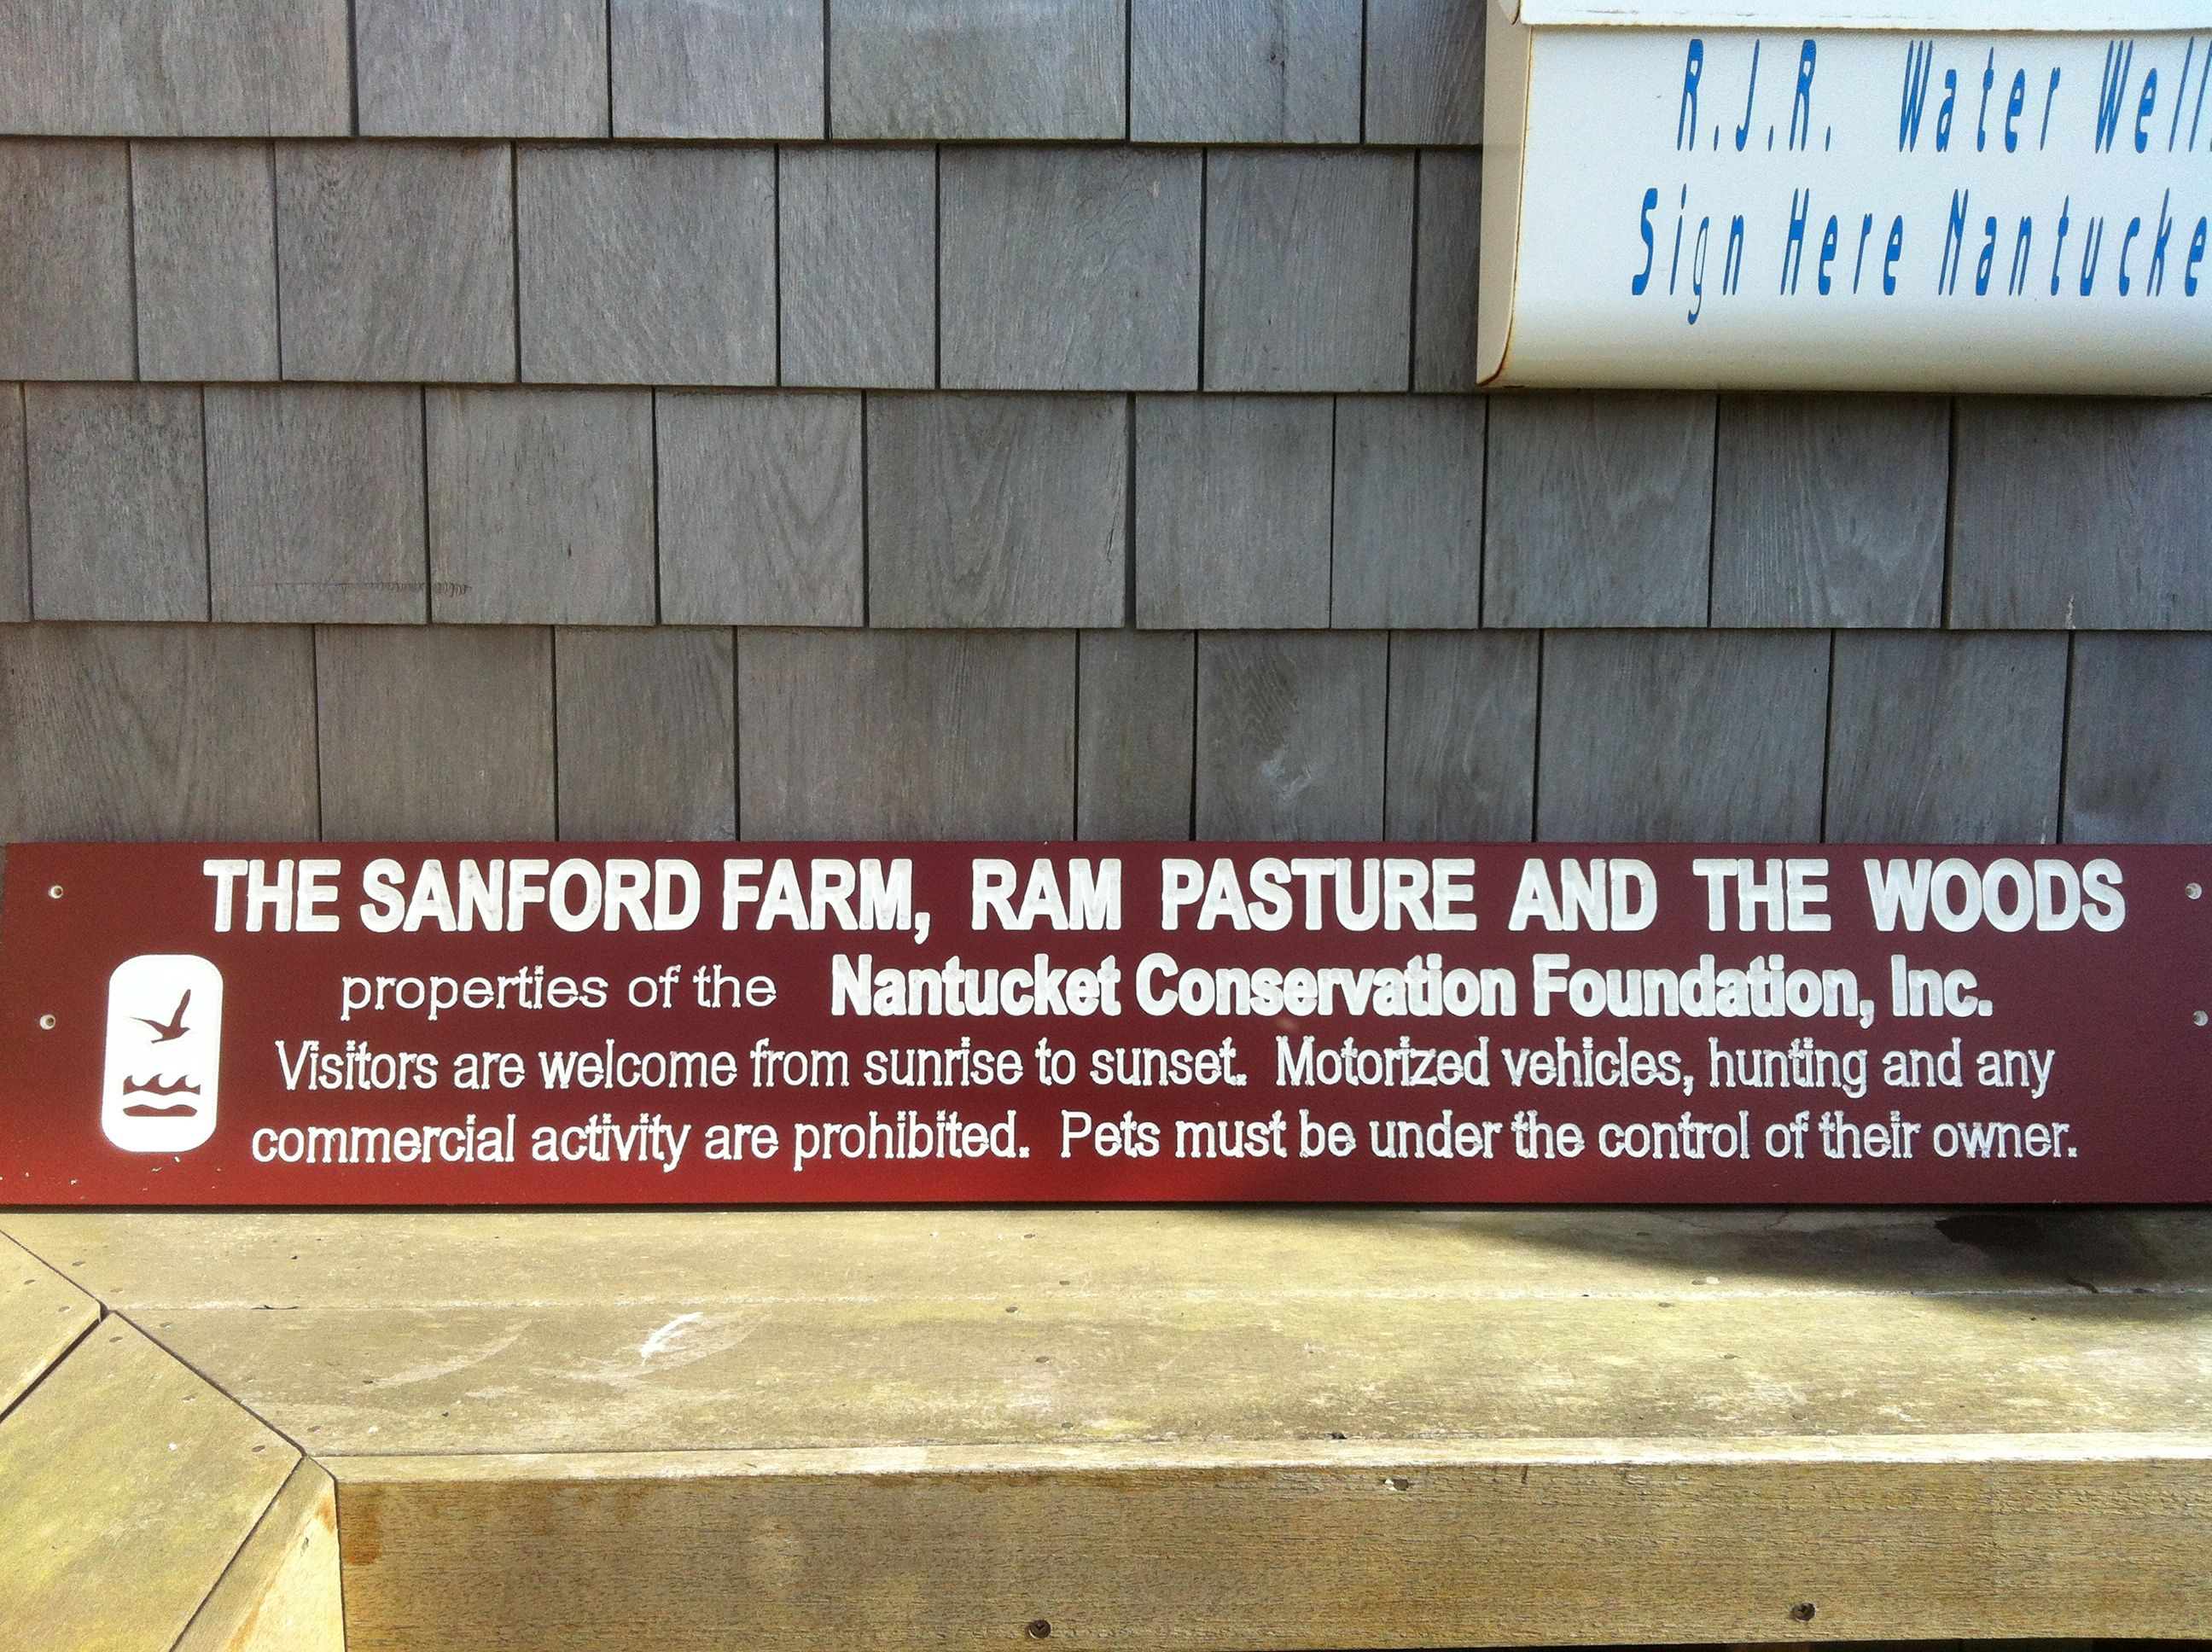 Another new sign for the Nantucket Conservation Foundation